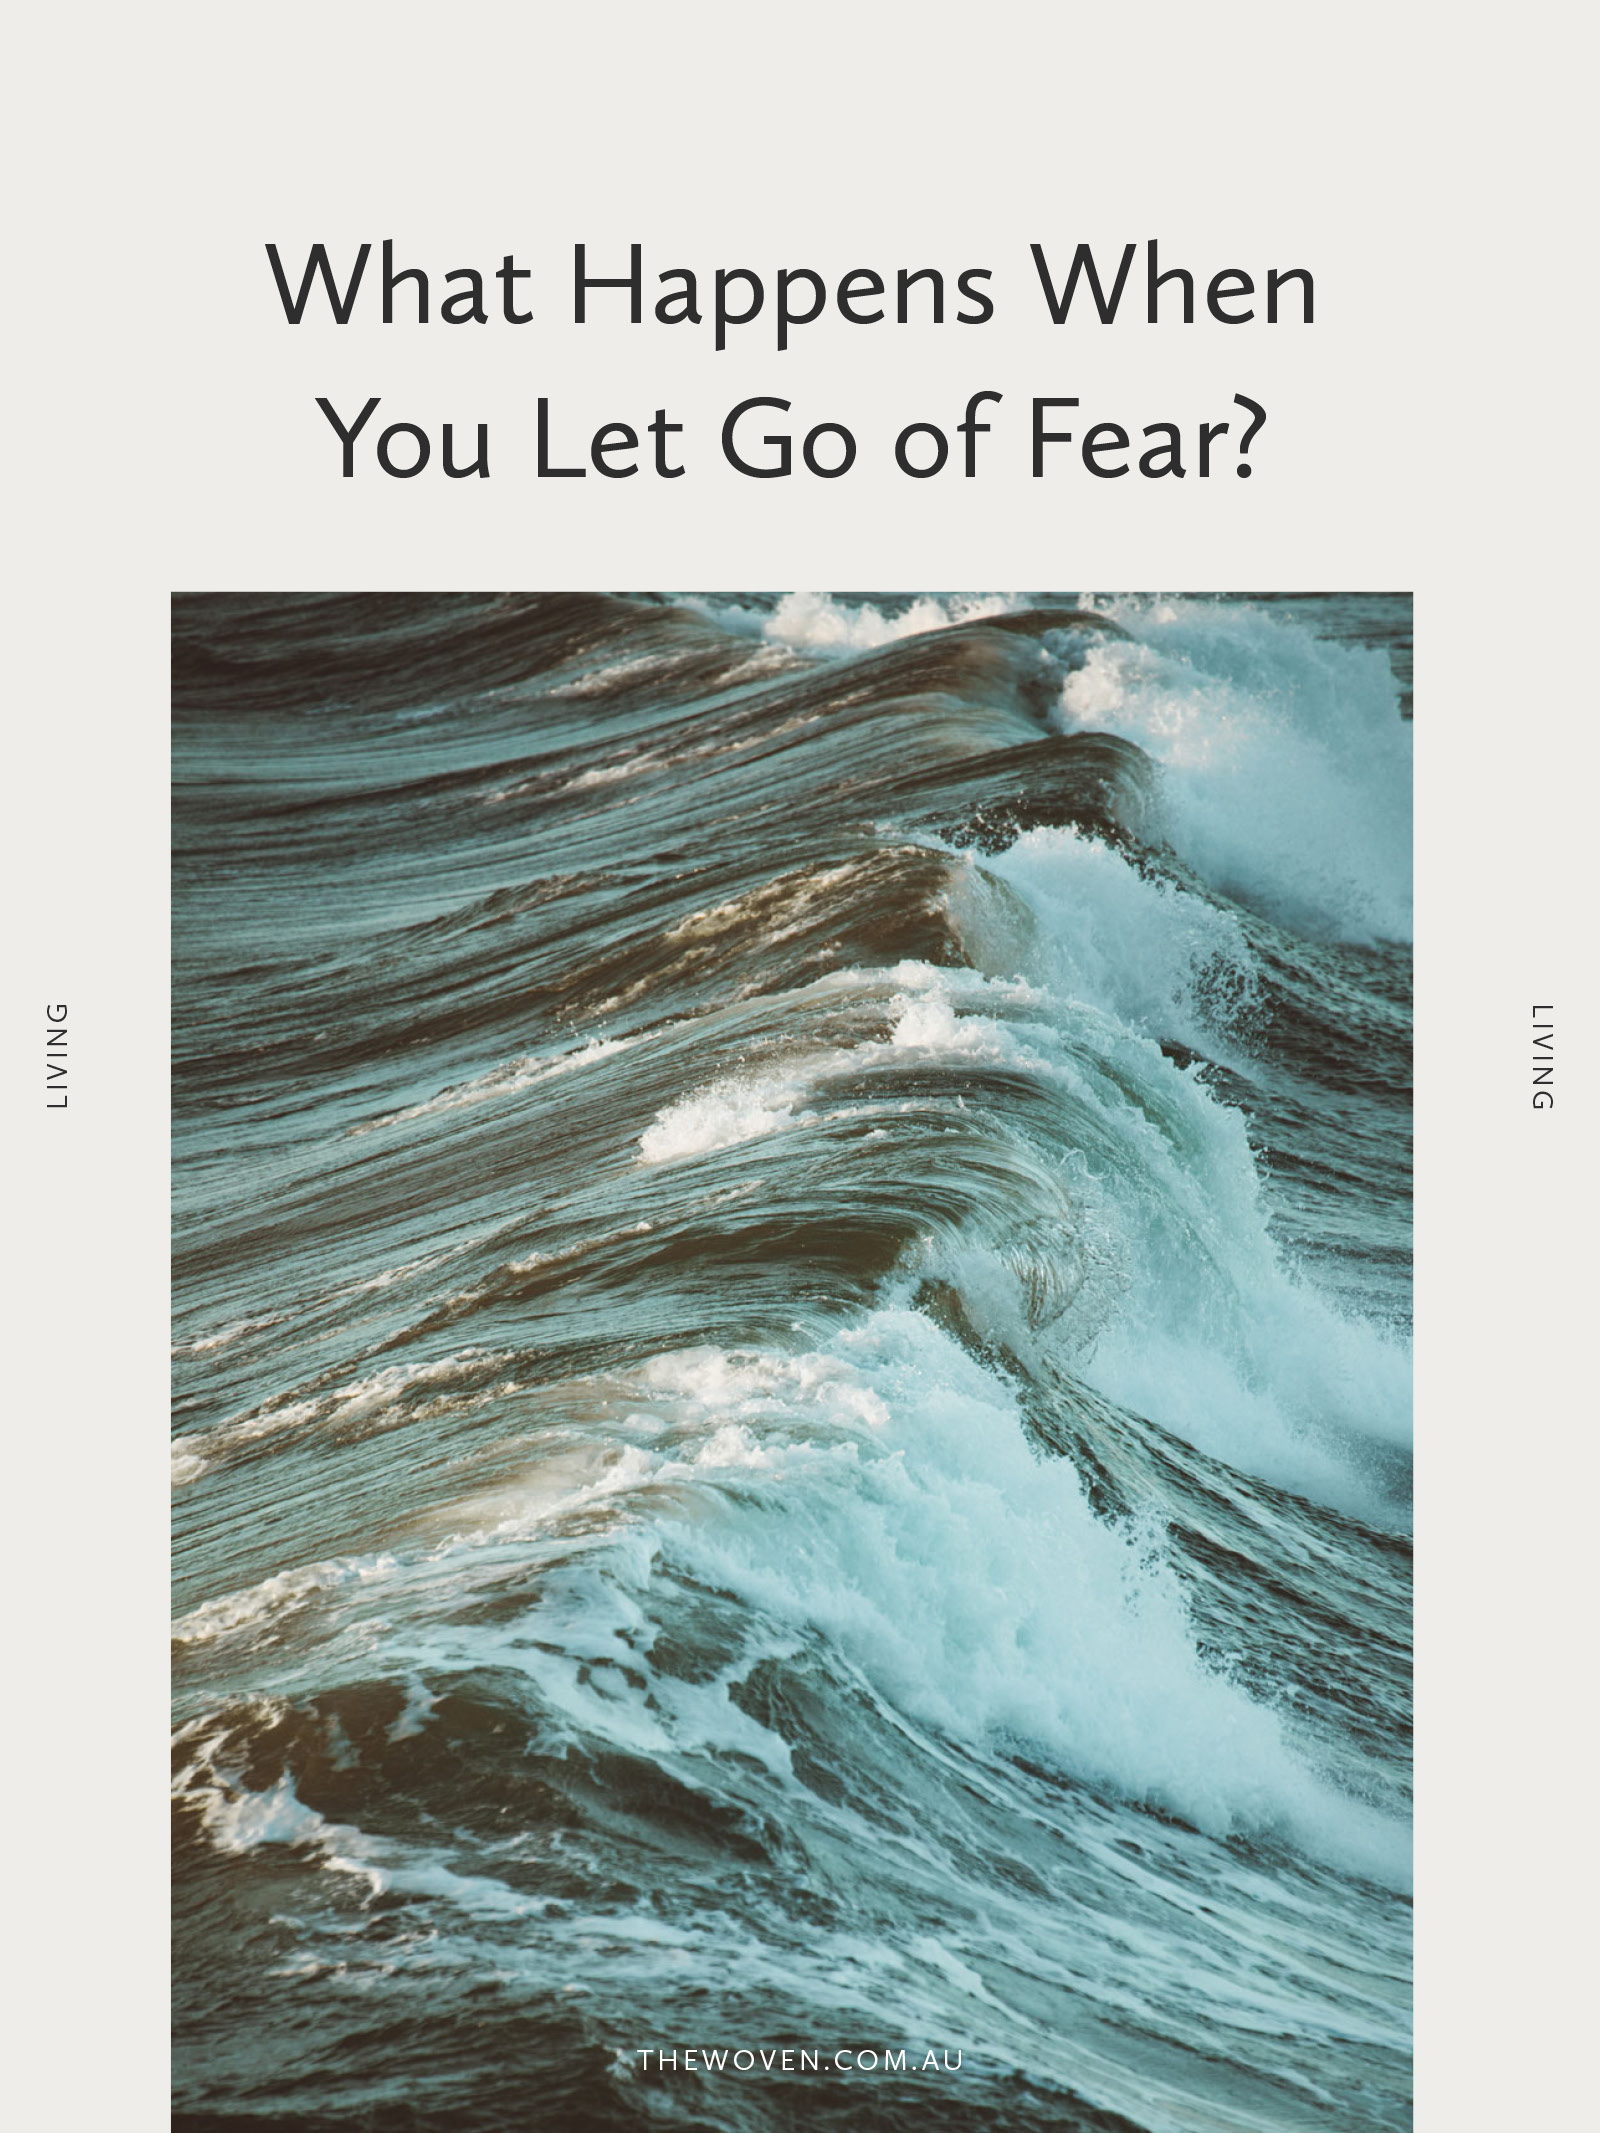 What happens when you let go of fear?